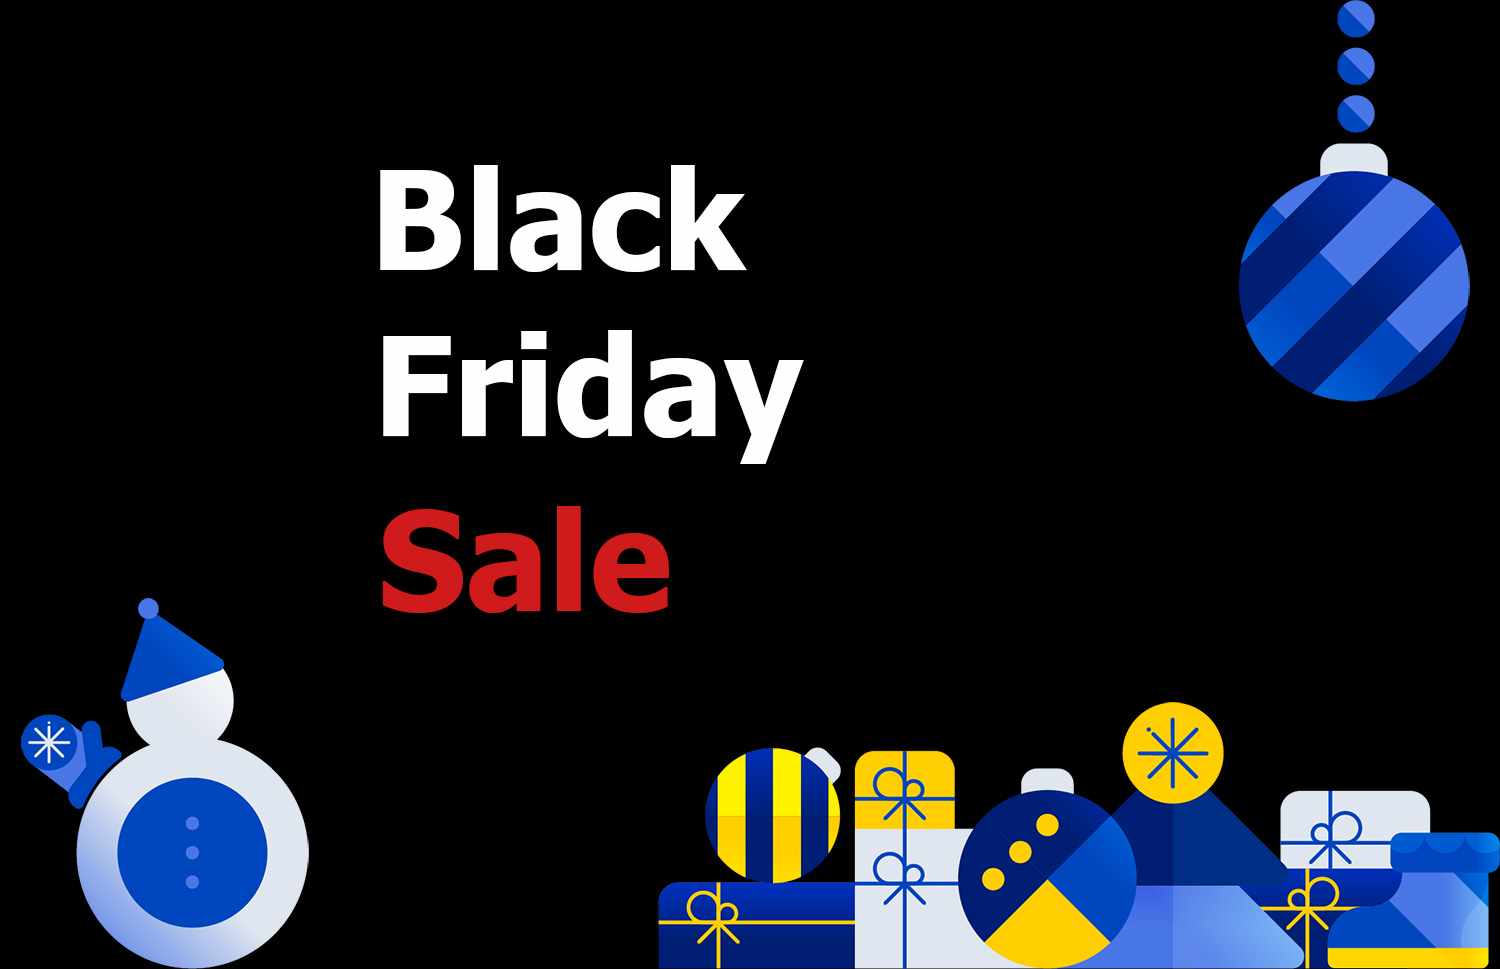 Black Friday sales at Best Buy: shop early and shop safe | Best